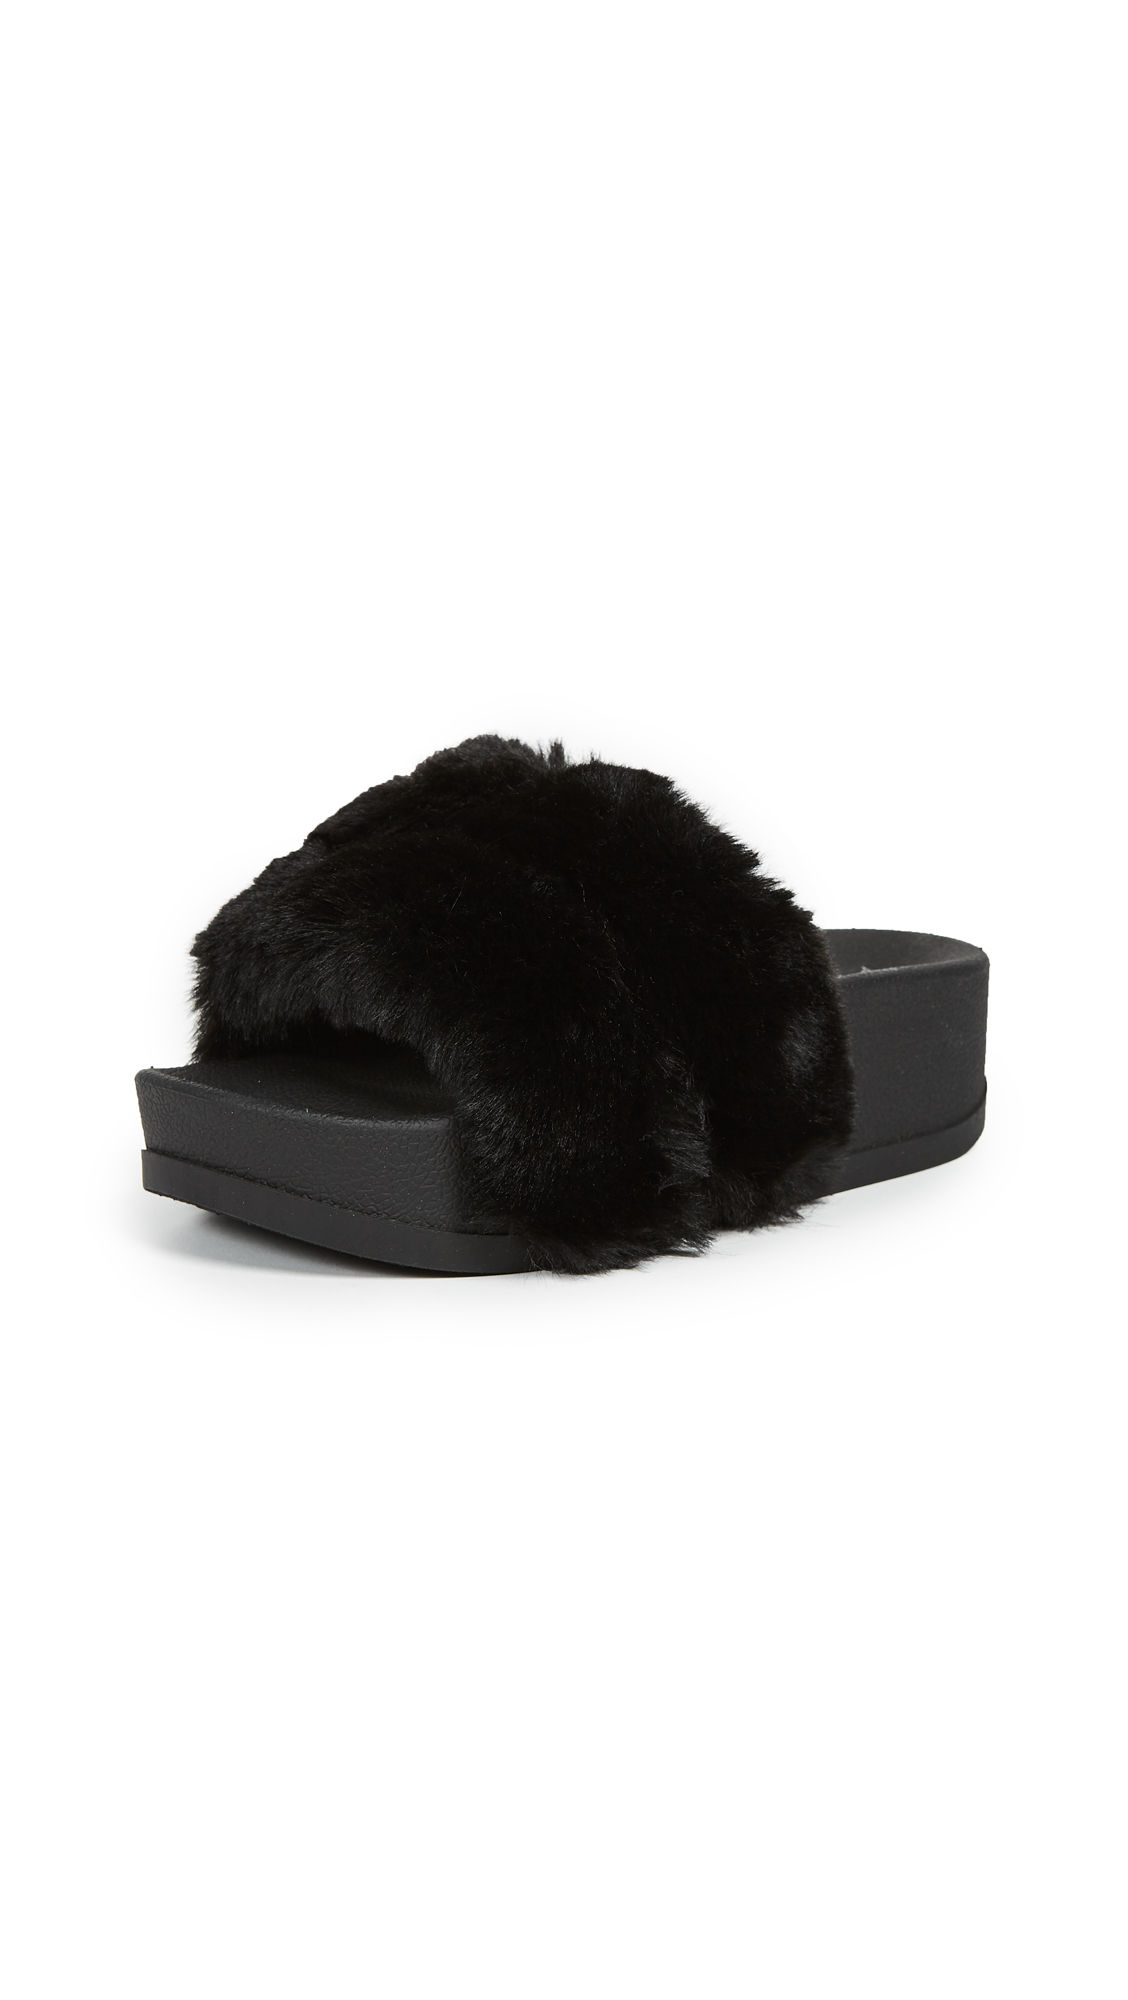 Jeffrey Campbell Lucky Double Strap Slides - Black